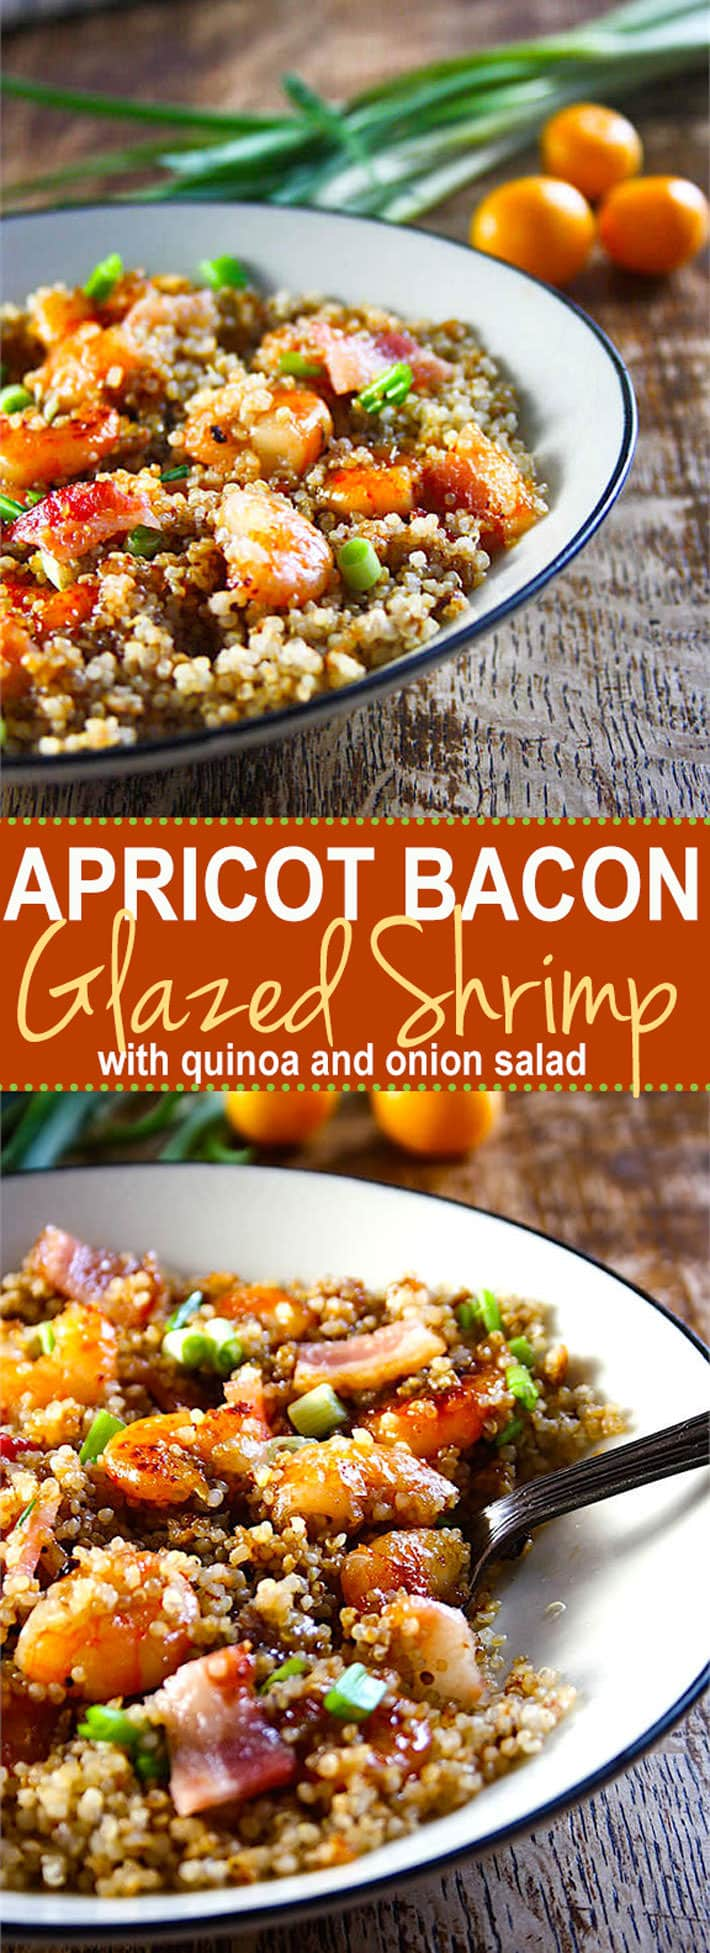 Apricot Bacon Glazed shrimp - A super EASY and flavorful shrimp dish that your whole family will love! It's gluten Free, healthy, and has a sweet savory sauce to DIE FOR!